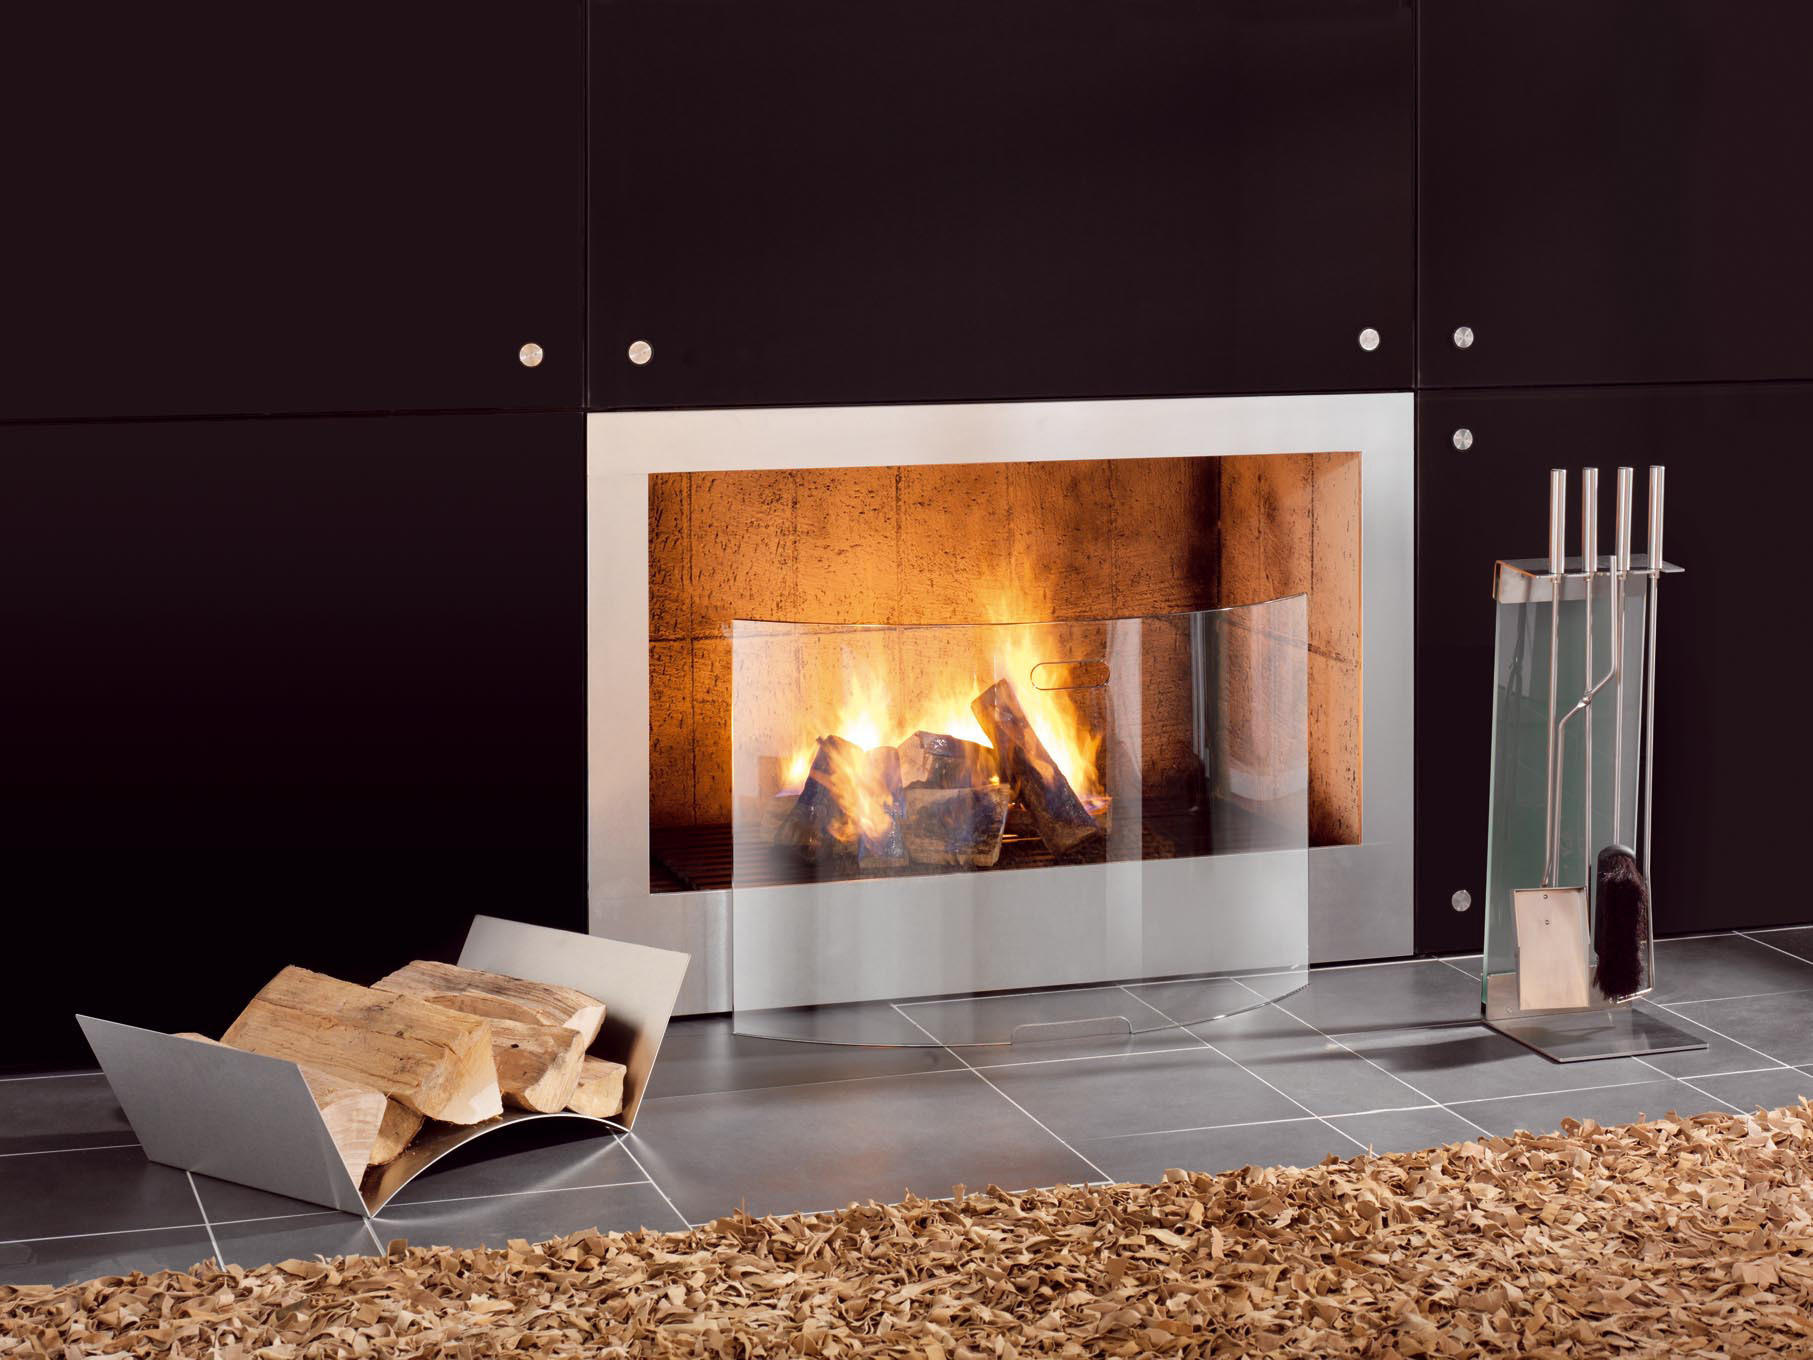 peter maly fireplace tool set fire tools from conmoto. Black Bedroom Furniture Sets. Home Design Ideas